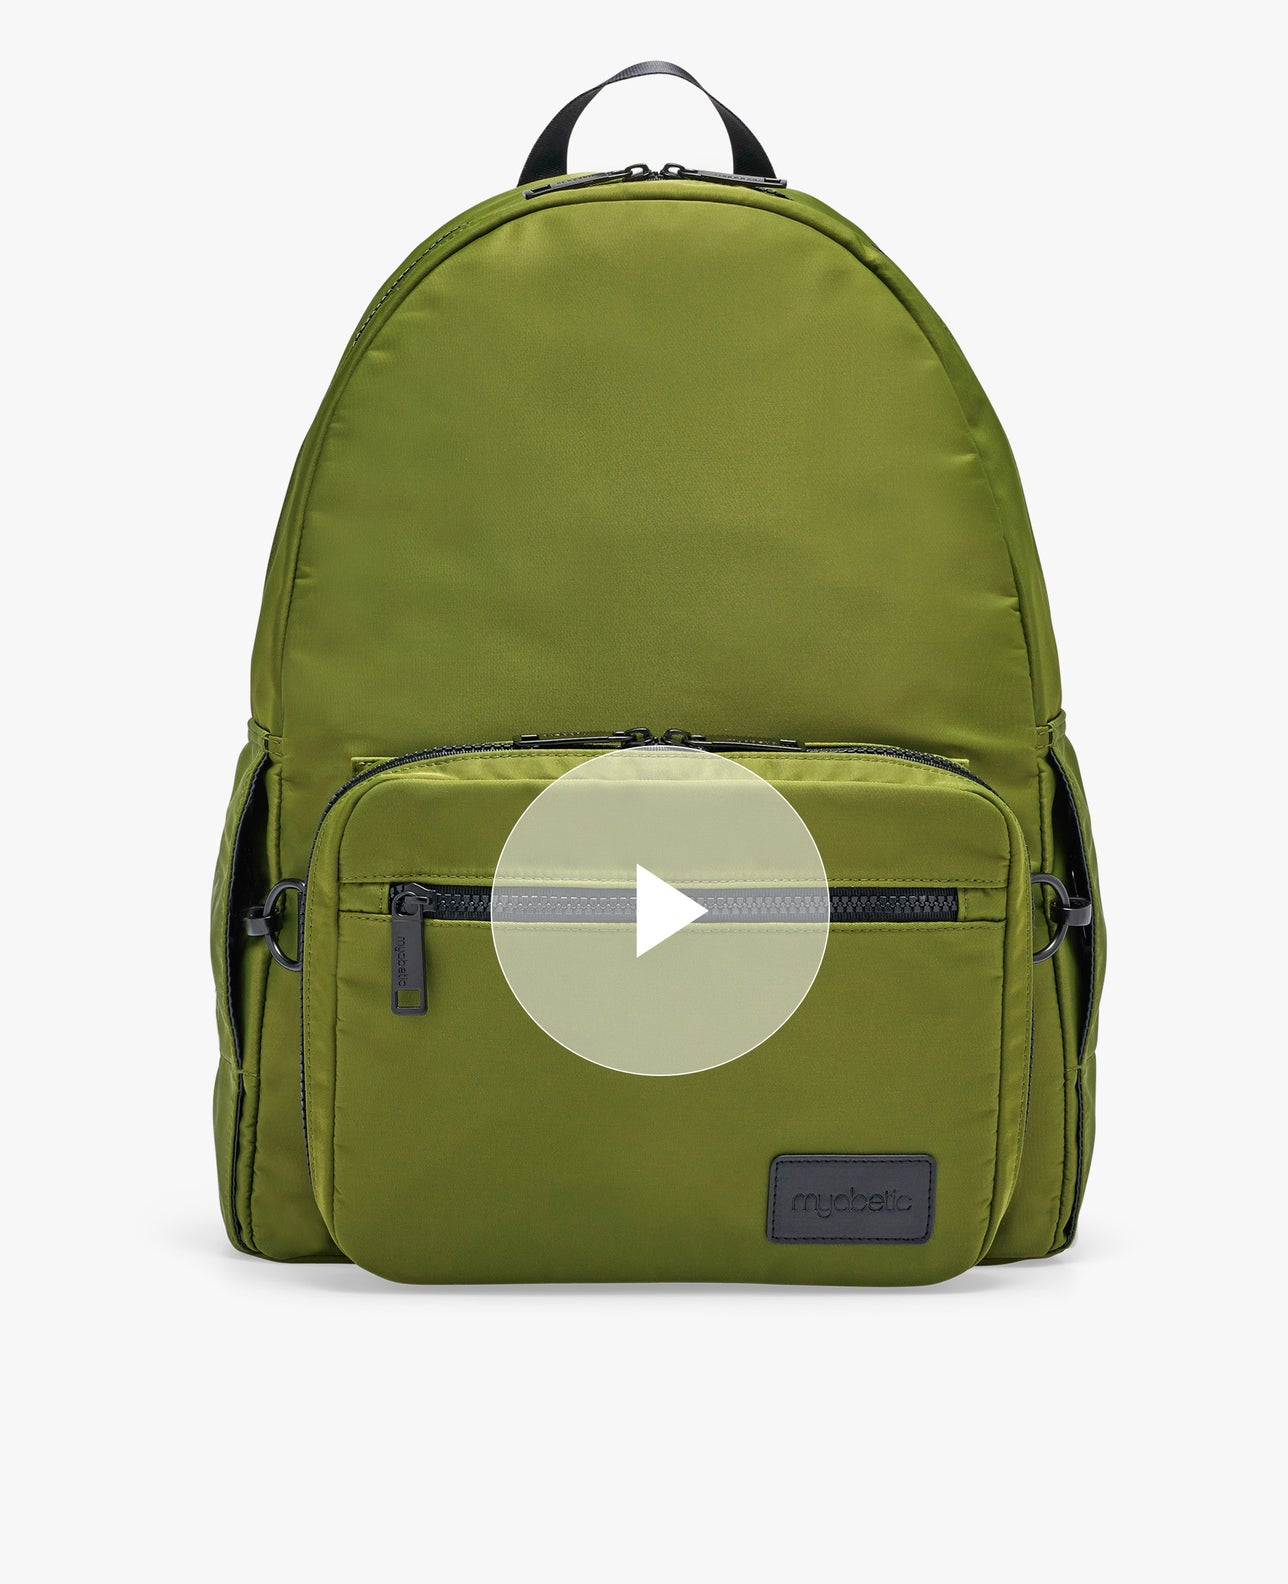 color:olive nylon  https://player.vimeo.com/video/525206309